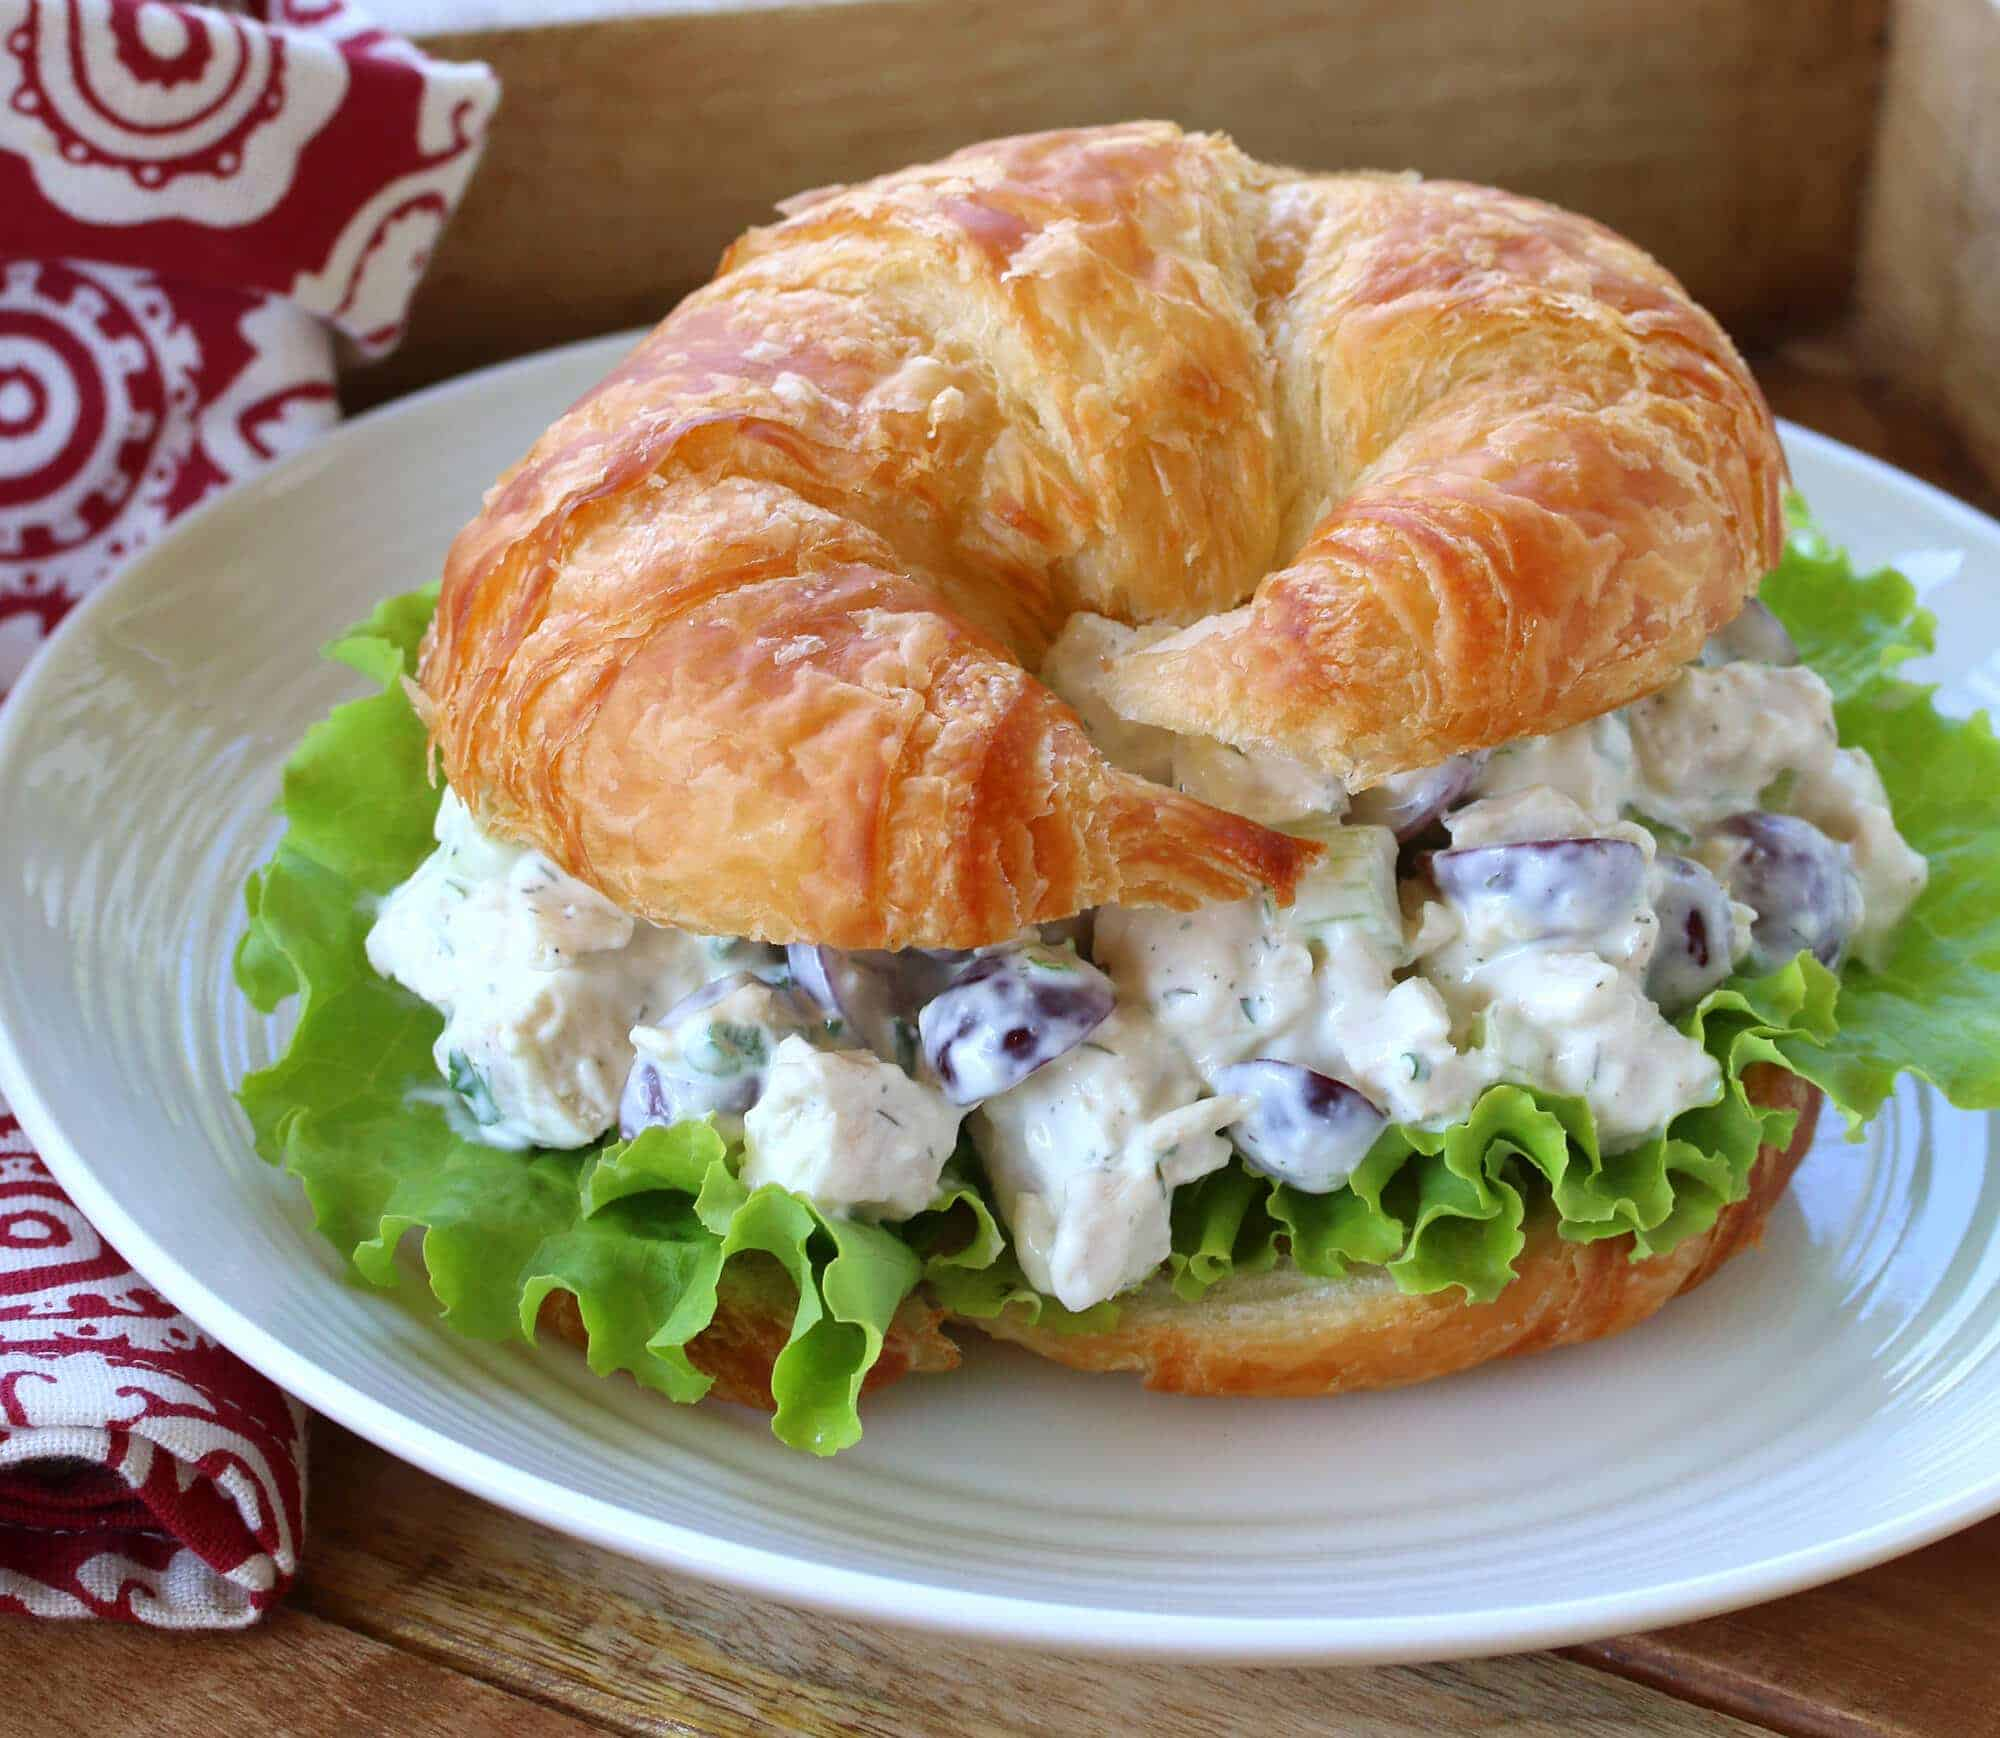 Best Chicken Salad The Daring Gourmet